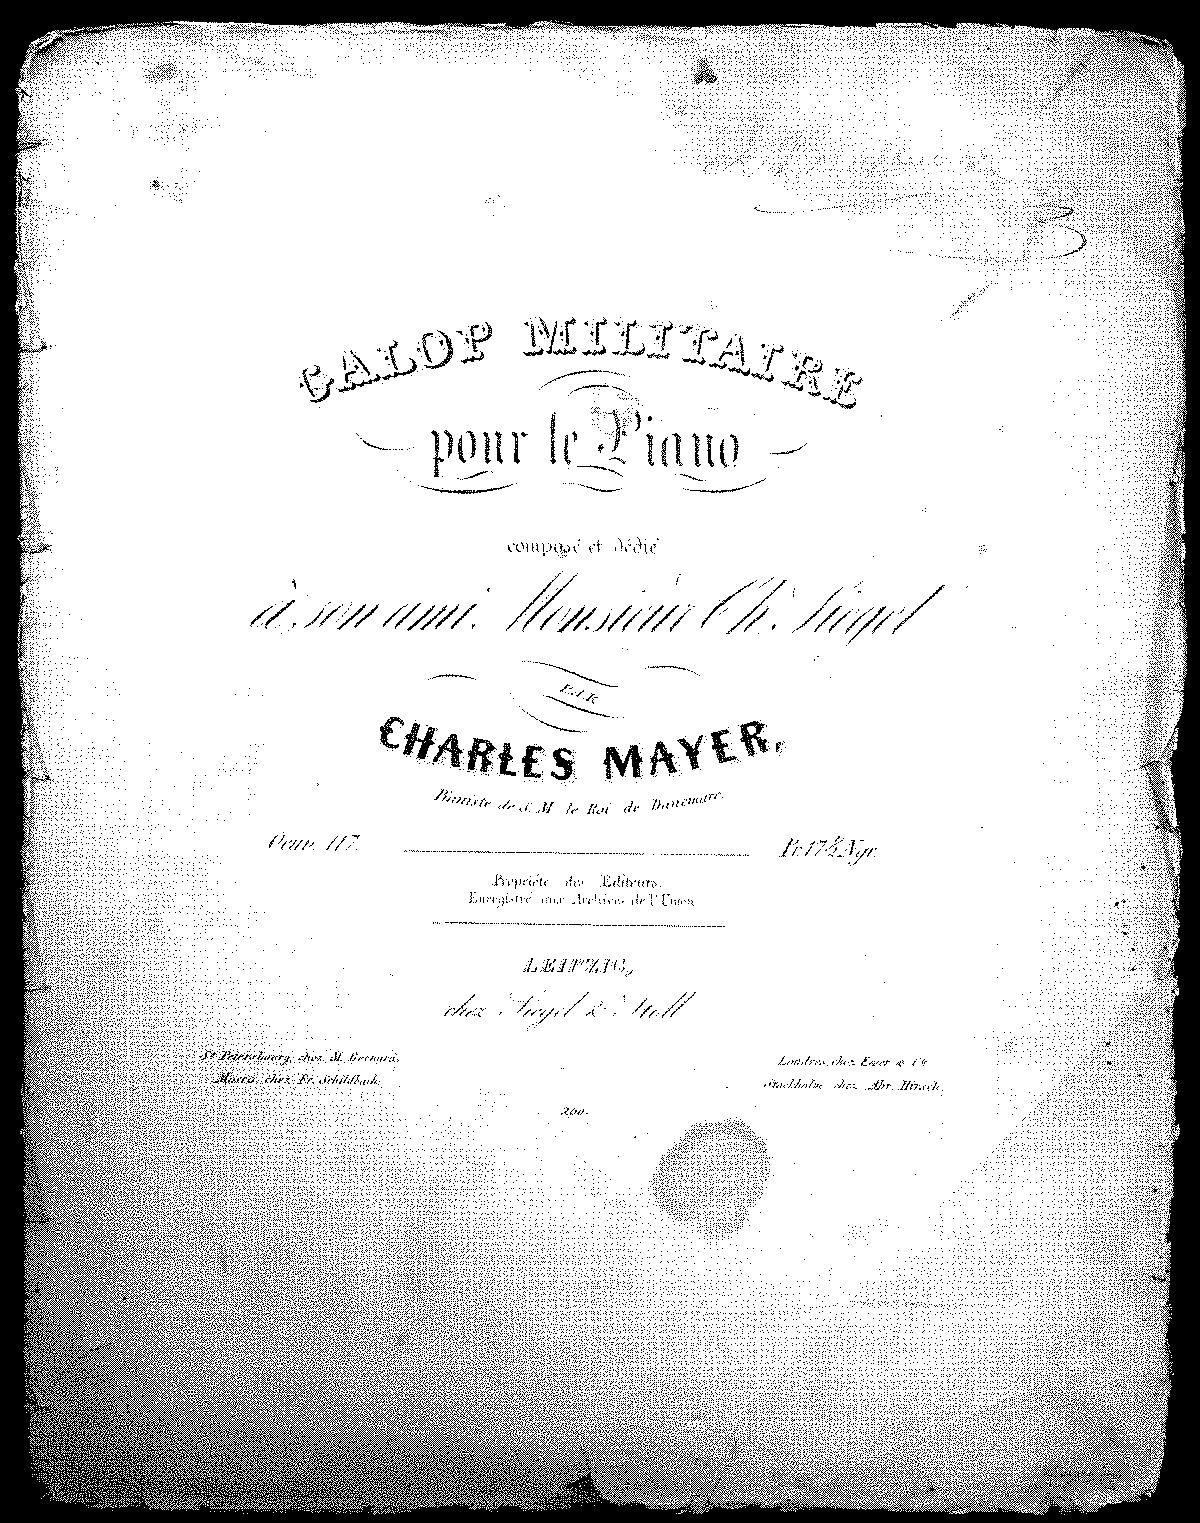 PMLP25970-Charles Mayer Galop Militaire Op. 117.pdf